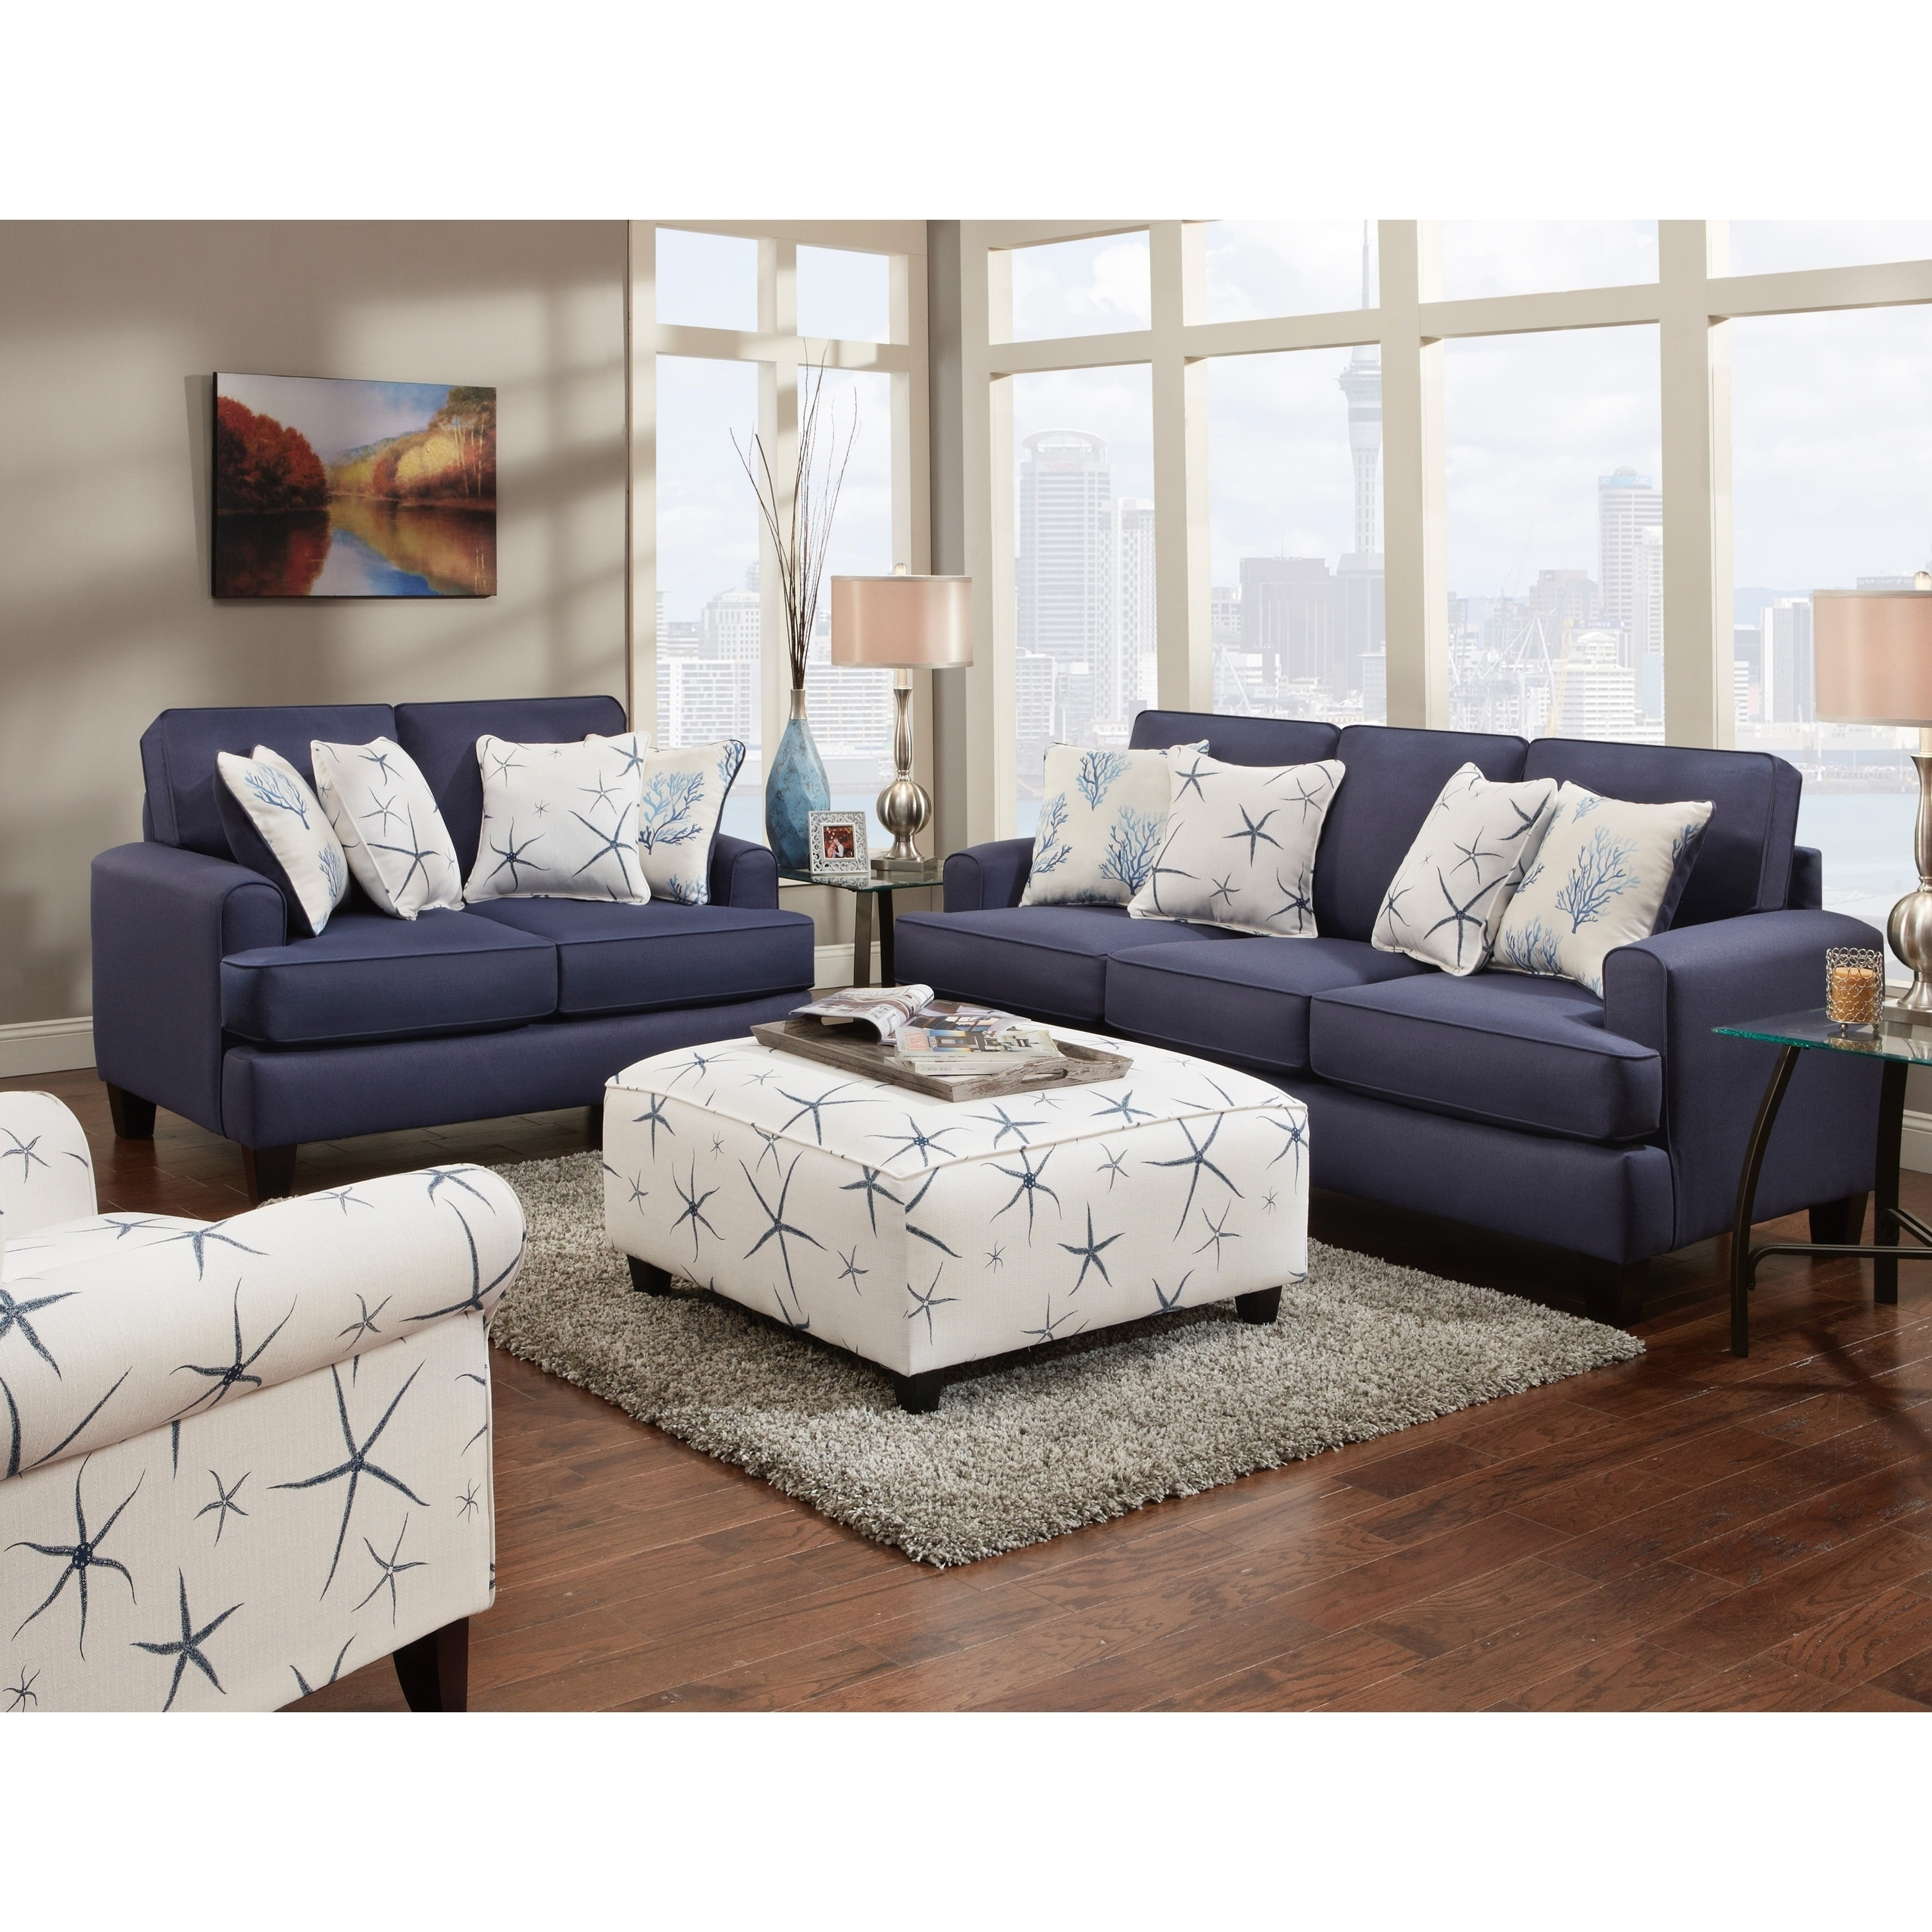 Shop For 2604 Stoked Cadet Queen Sleep Sofa Get Free Shipping On Everything At Overstock Your Online Furniture Outlet Store Get 5 In Rewards With Club O 25429540